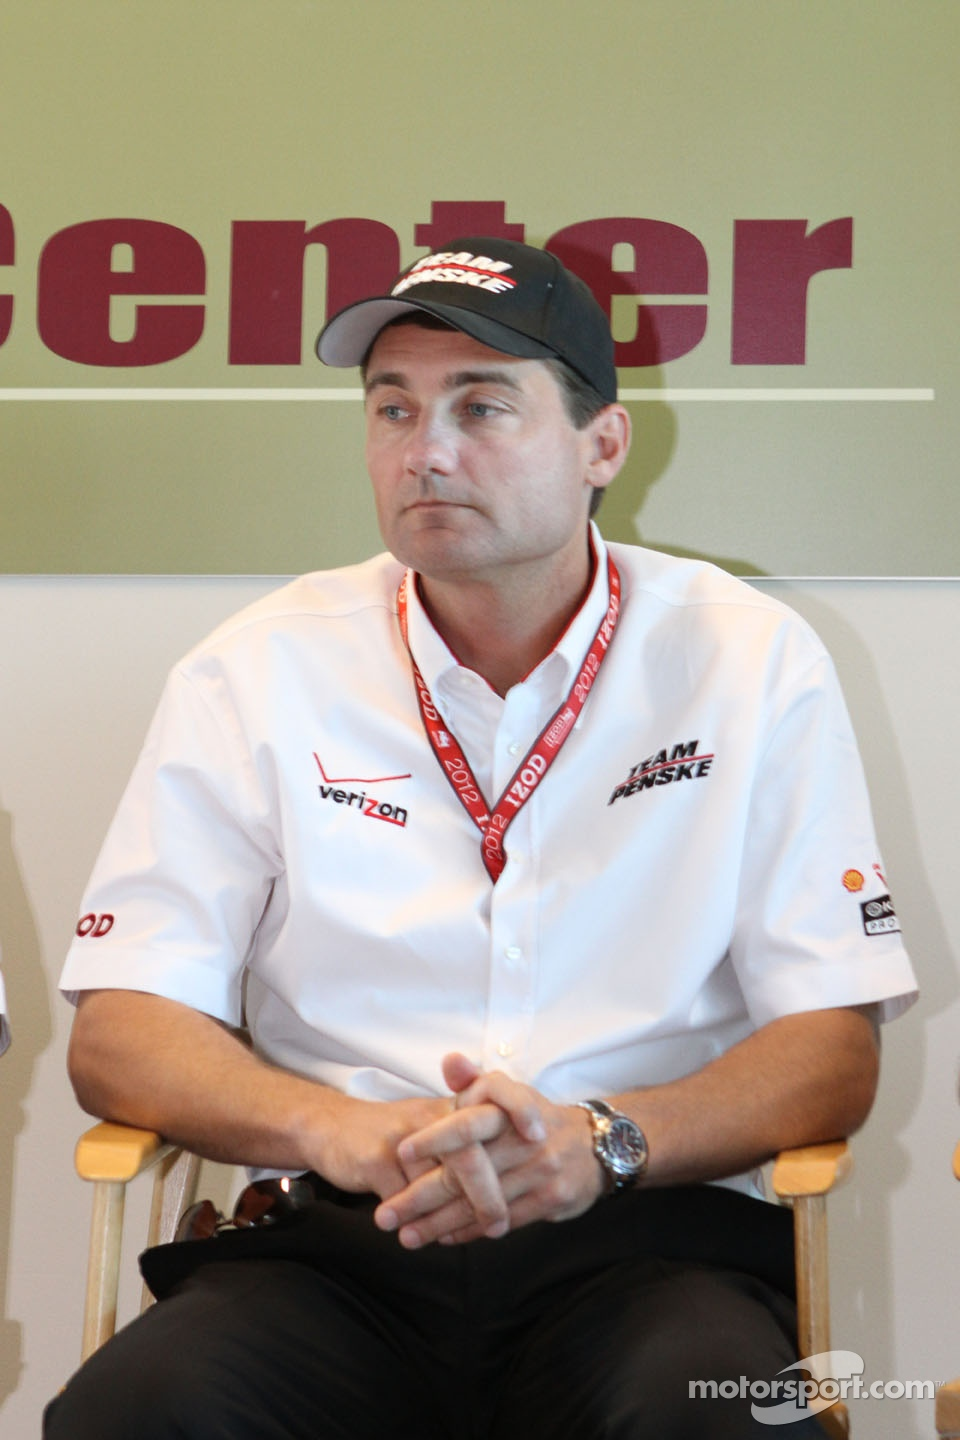 Tim Cedric, Team Penske Racing